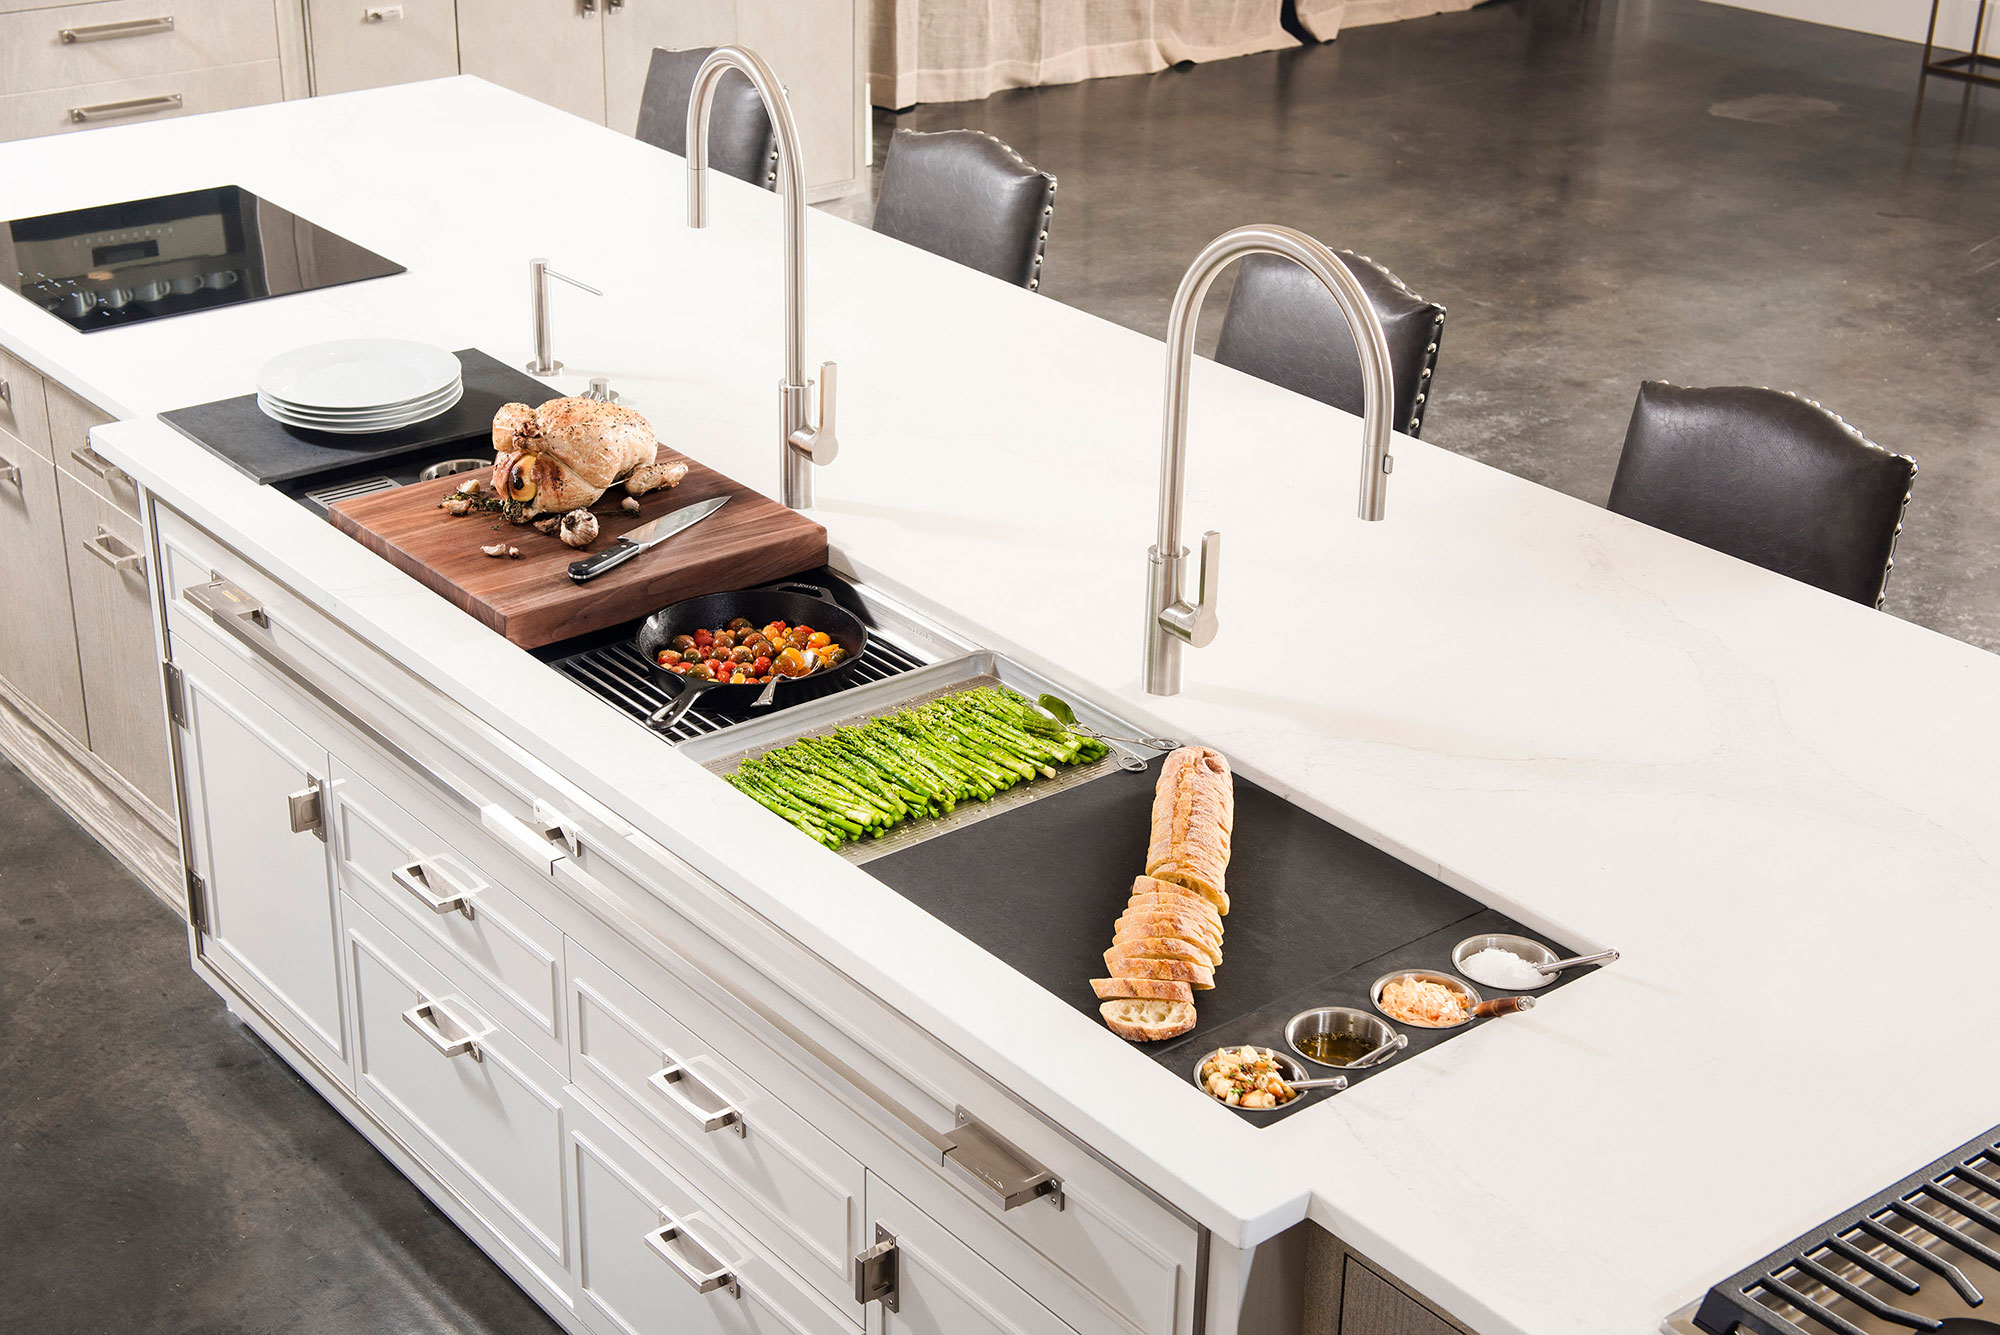 The Galley at Clarke Showroom